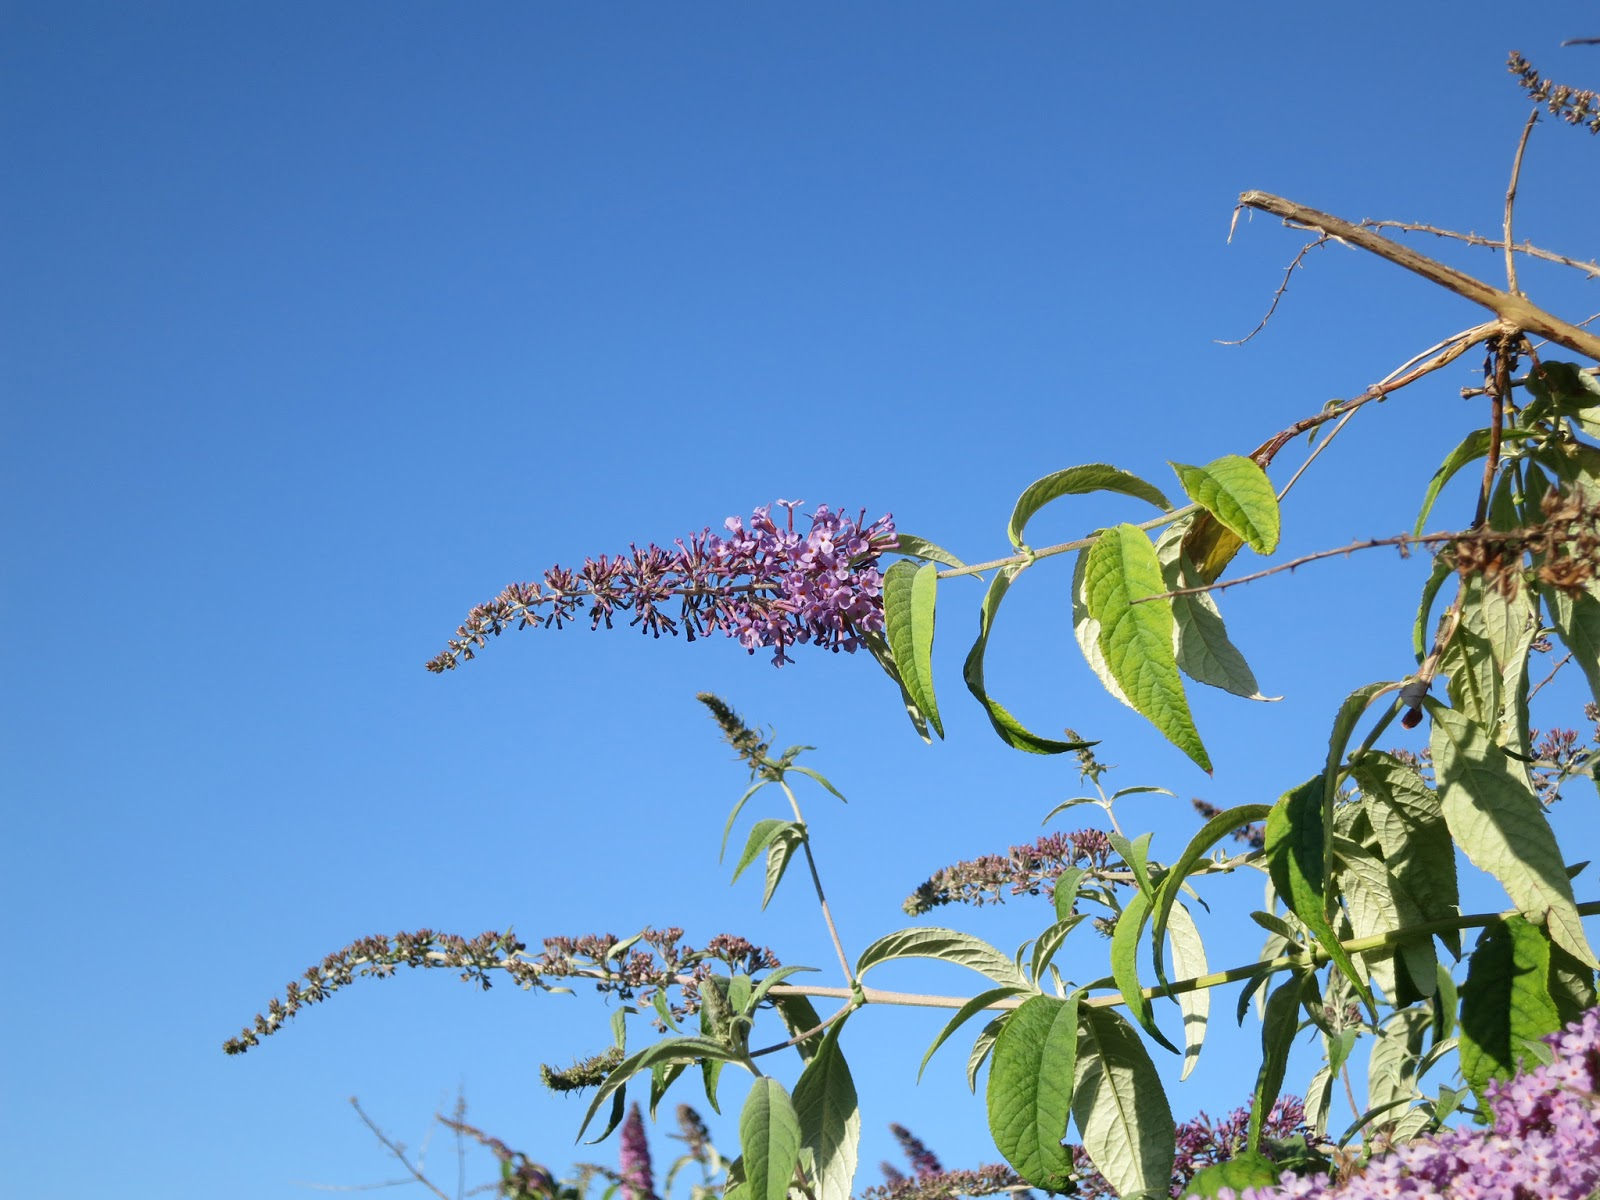 Buddleia just beginning to open against a blue sky